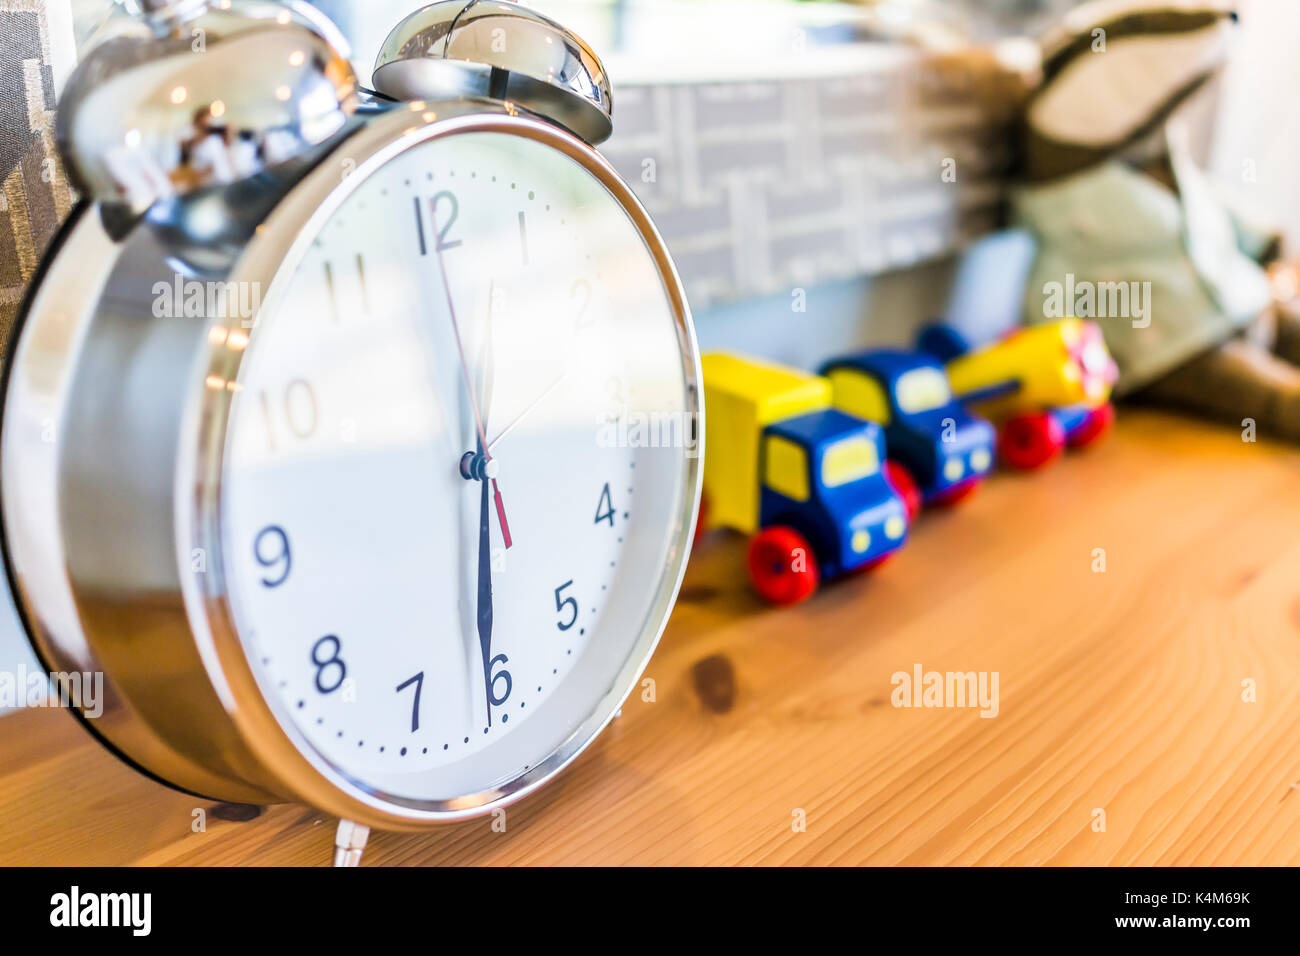 Closeup of modern twin bell ring analogy clock on wooden table desk nightstand with toy trucks in boy's bedroom in model house, home or apartment - Stock Image